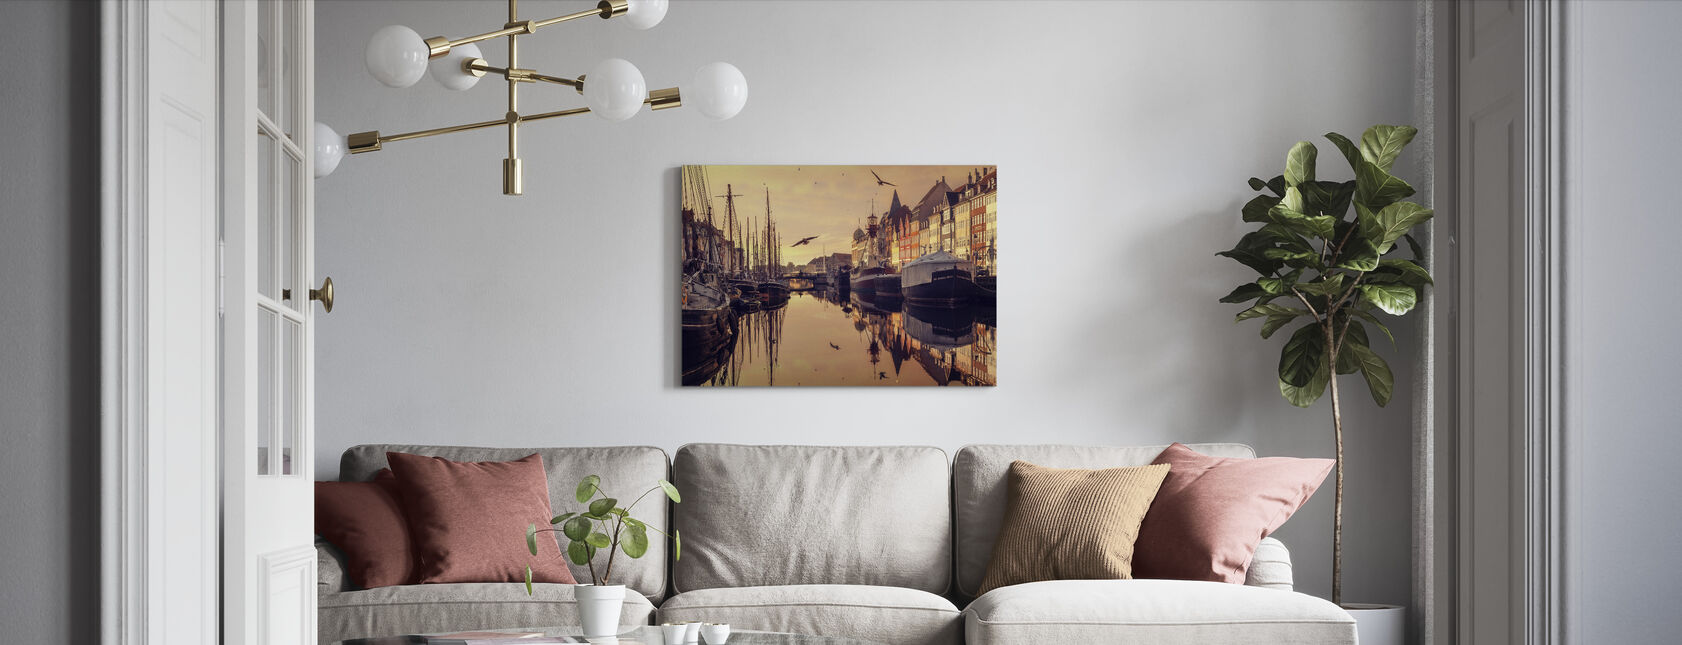 Romantic Copenhagen, Denmark - Canvas print - Living Room